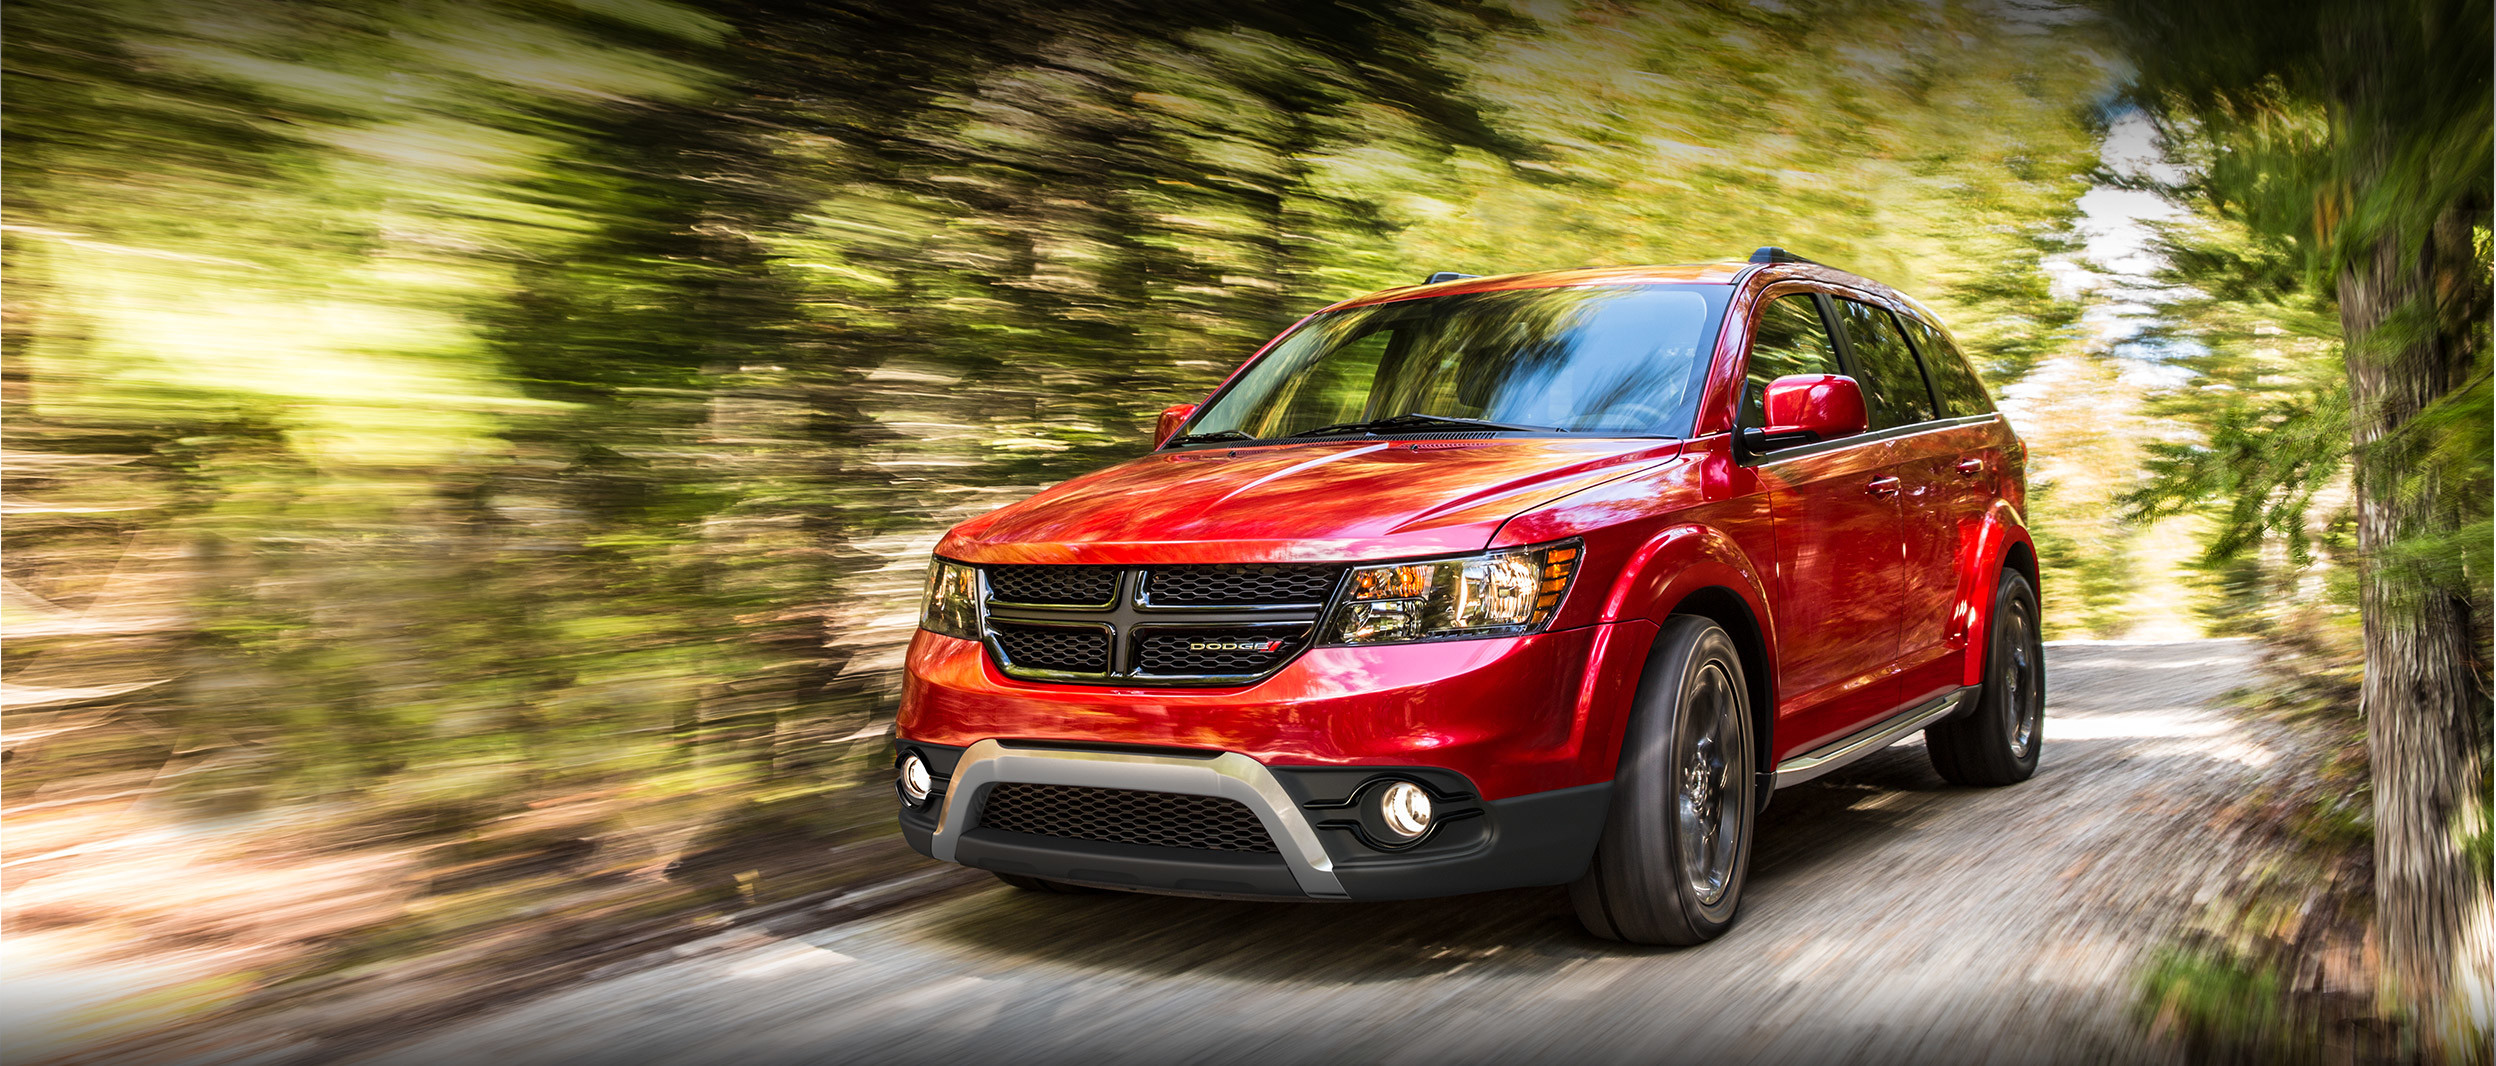 2018 Dodge journey, bright red exterior, side view